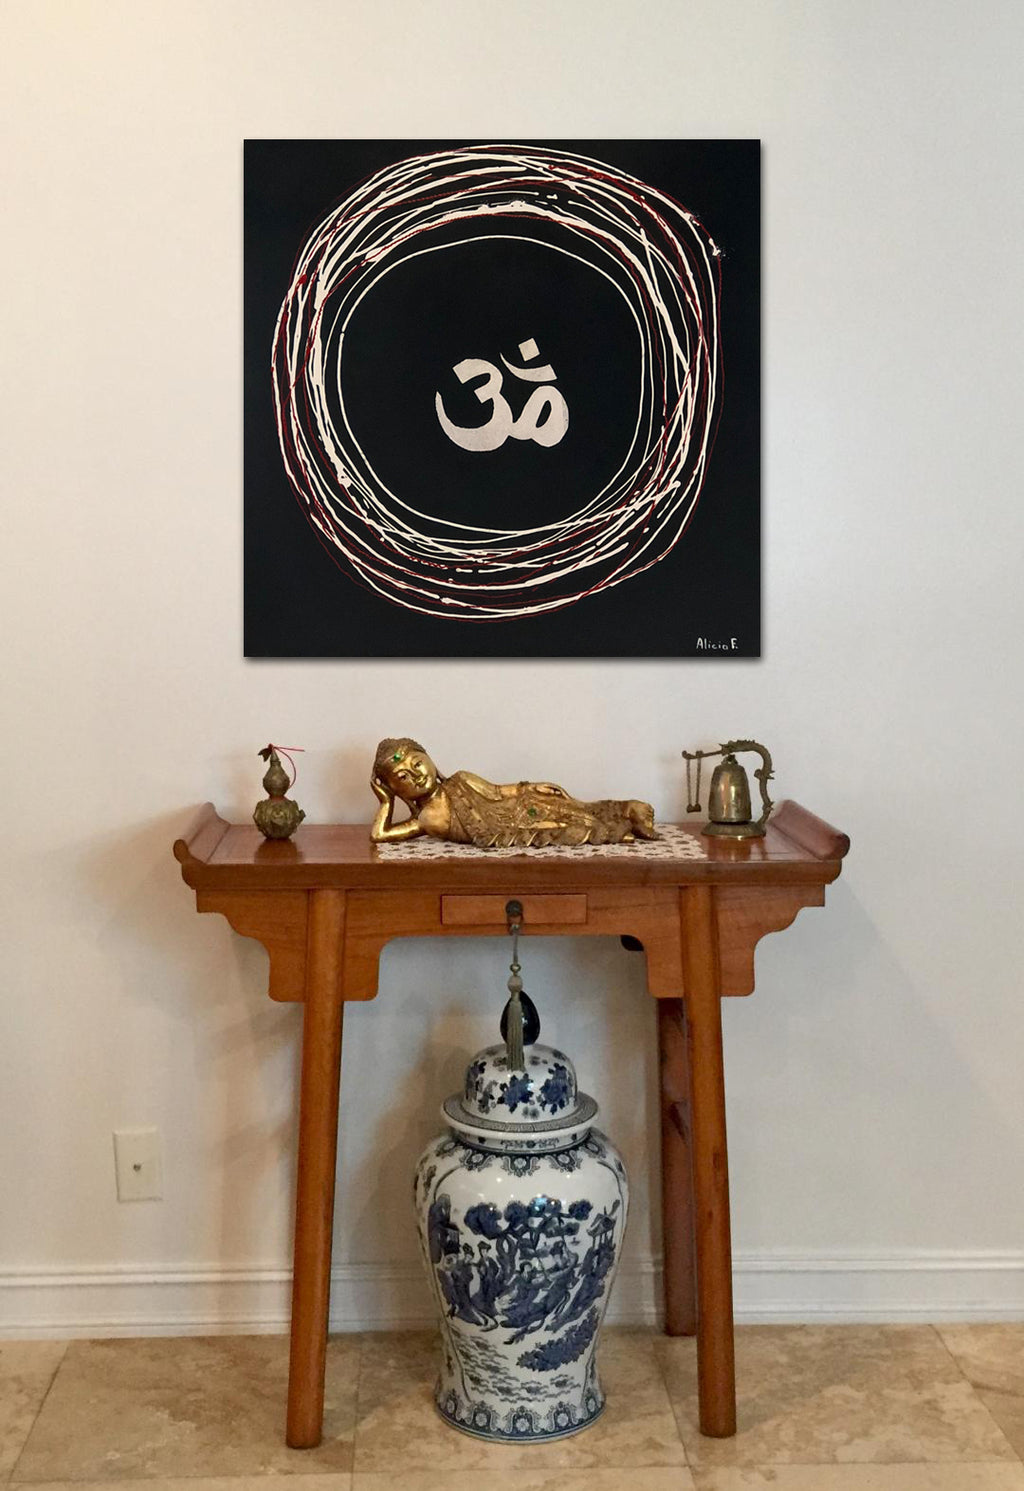 OM in the Circle of Infinity